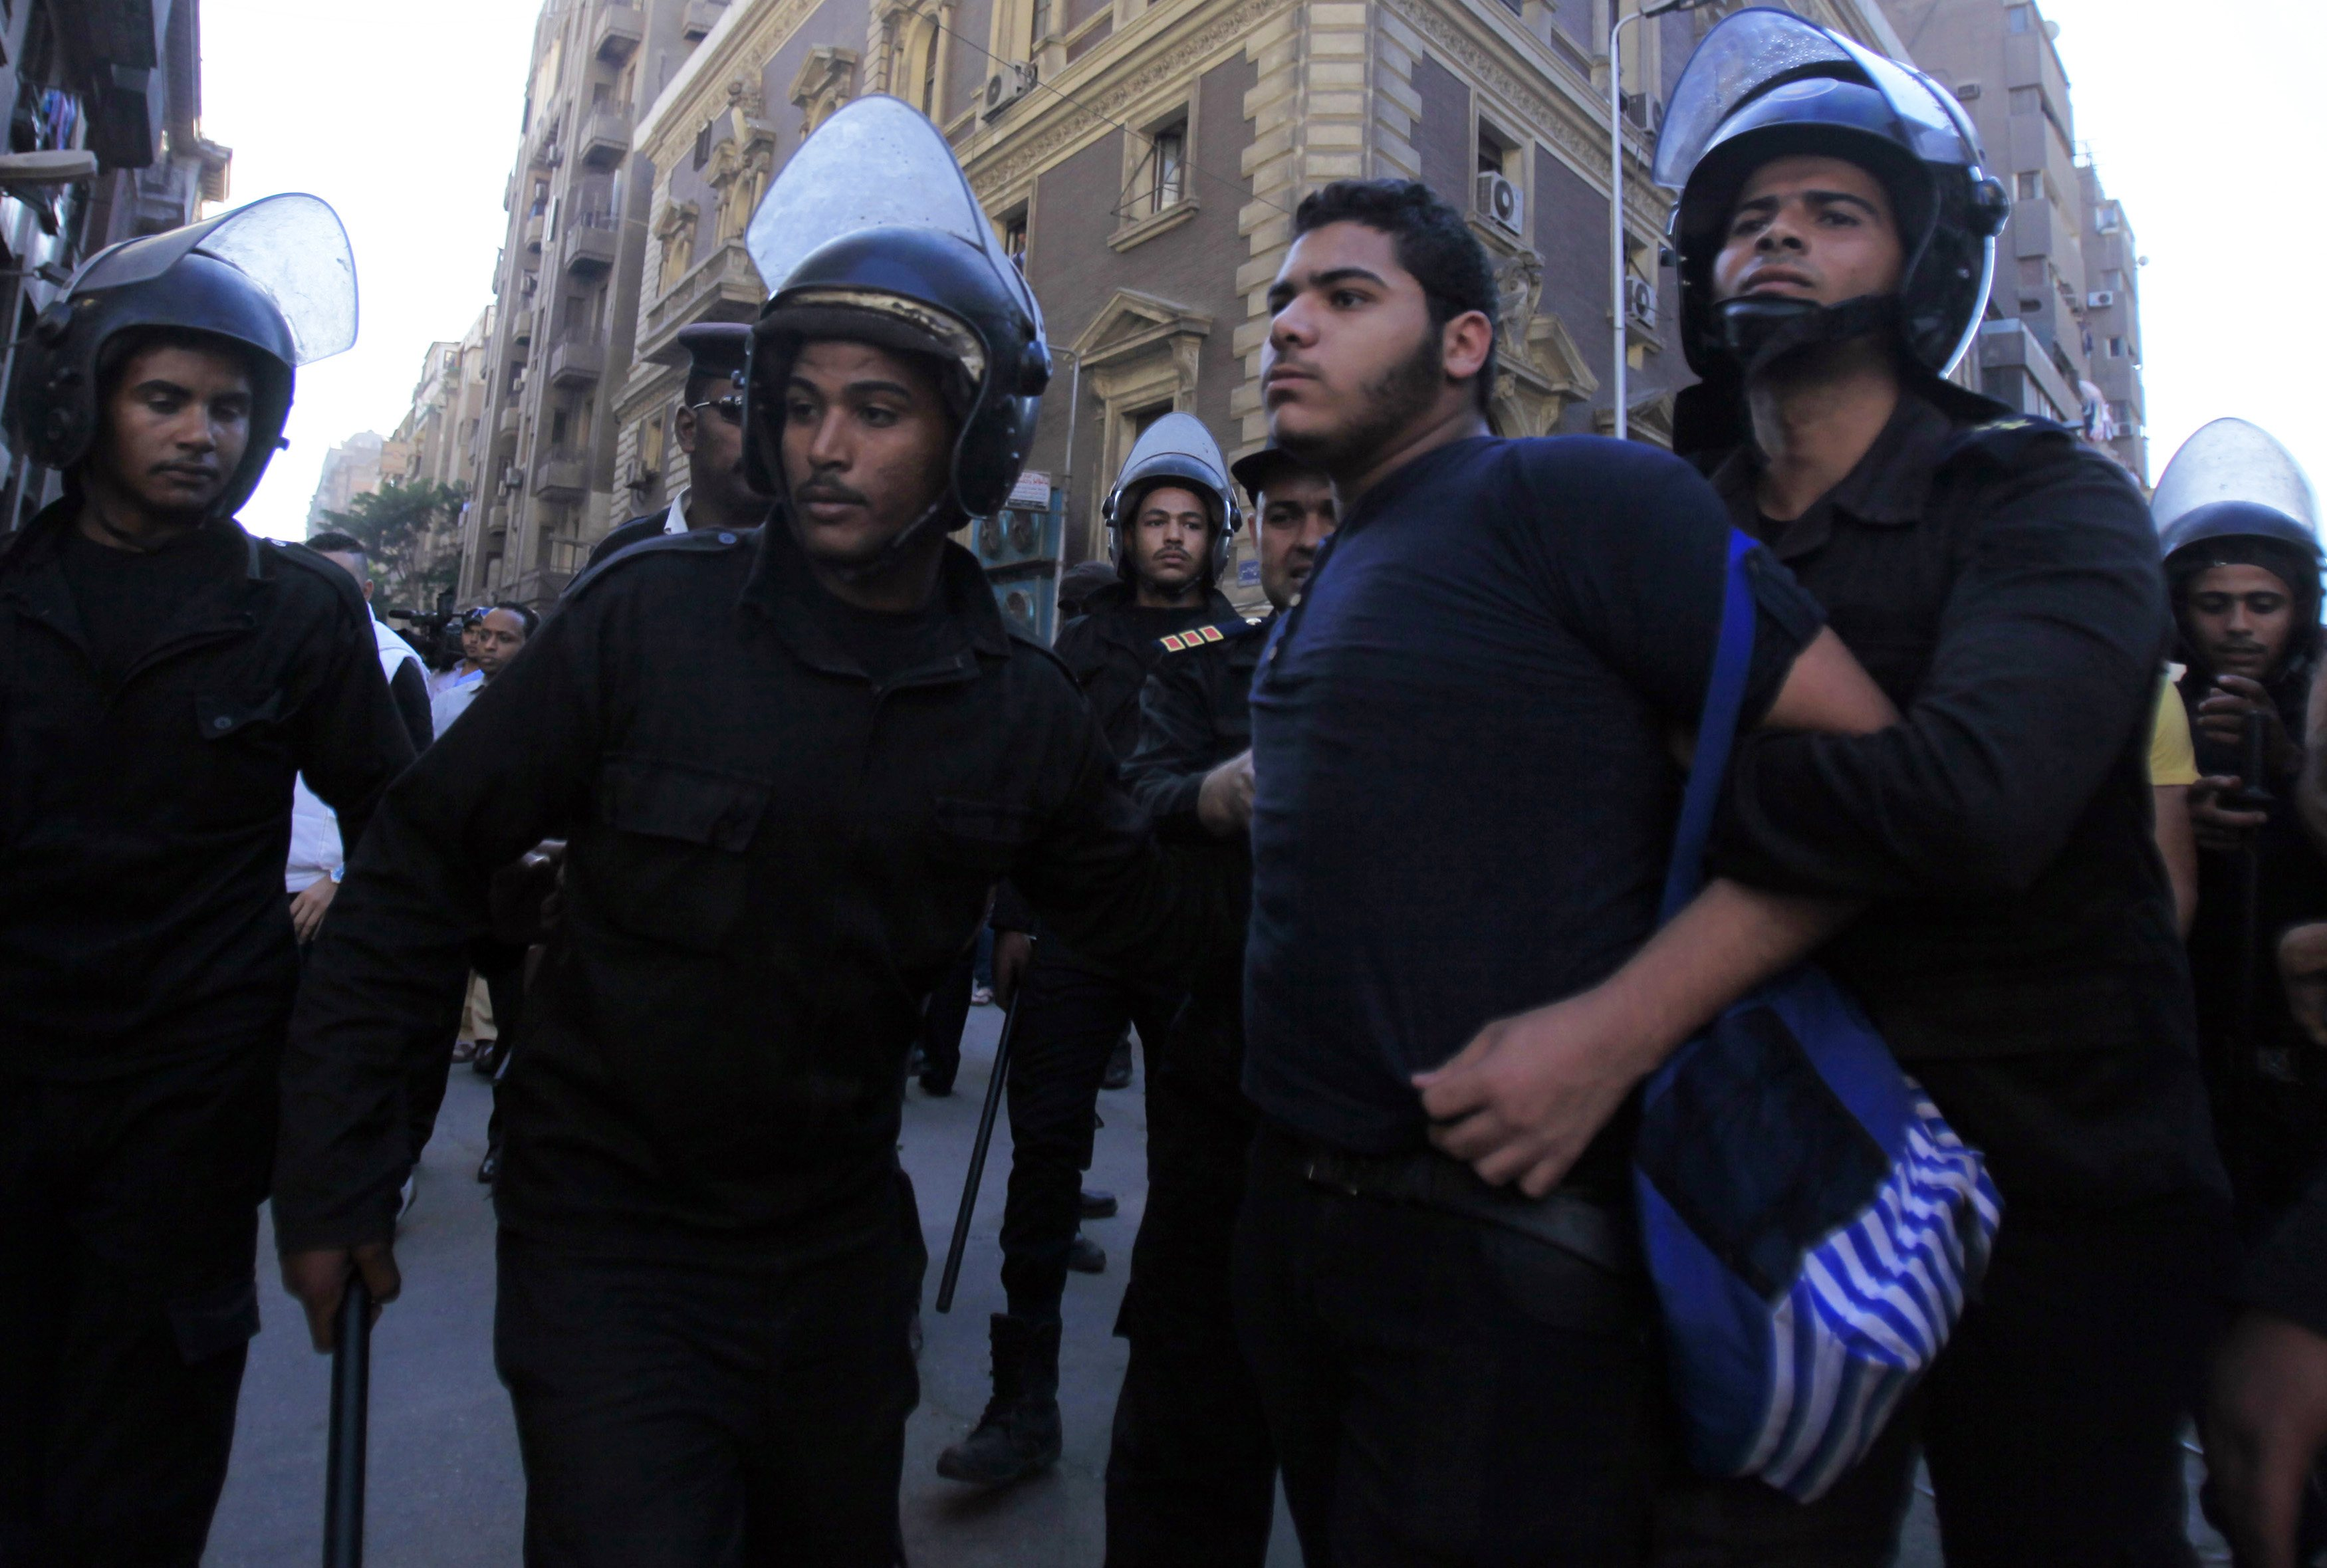 Egyptians create app to tell families and lawyers they are being arrested